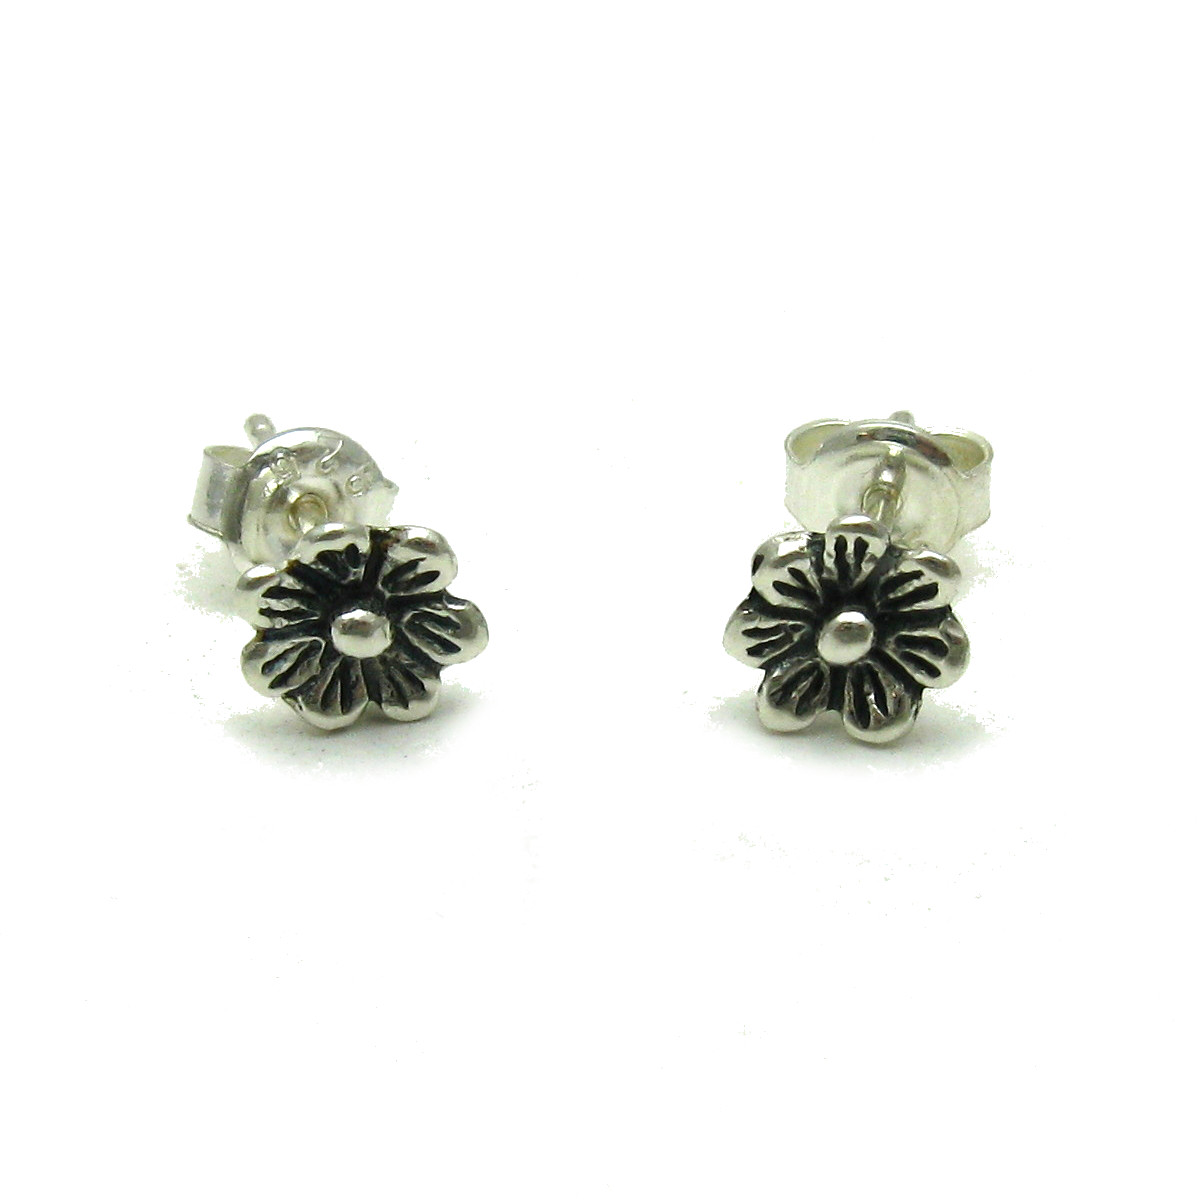 Silver earrings - E000593